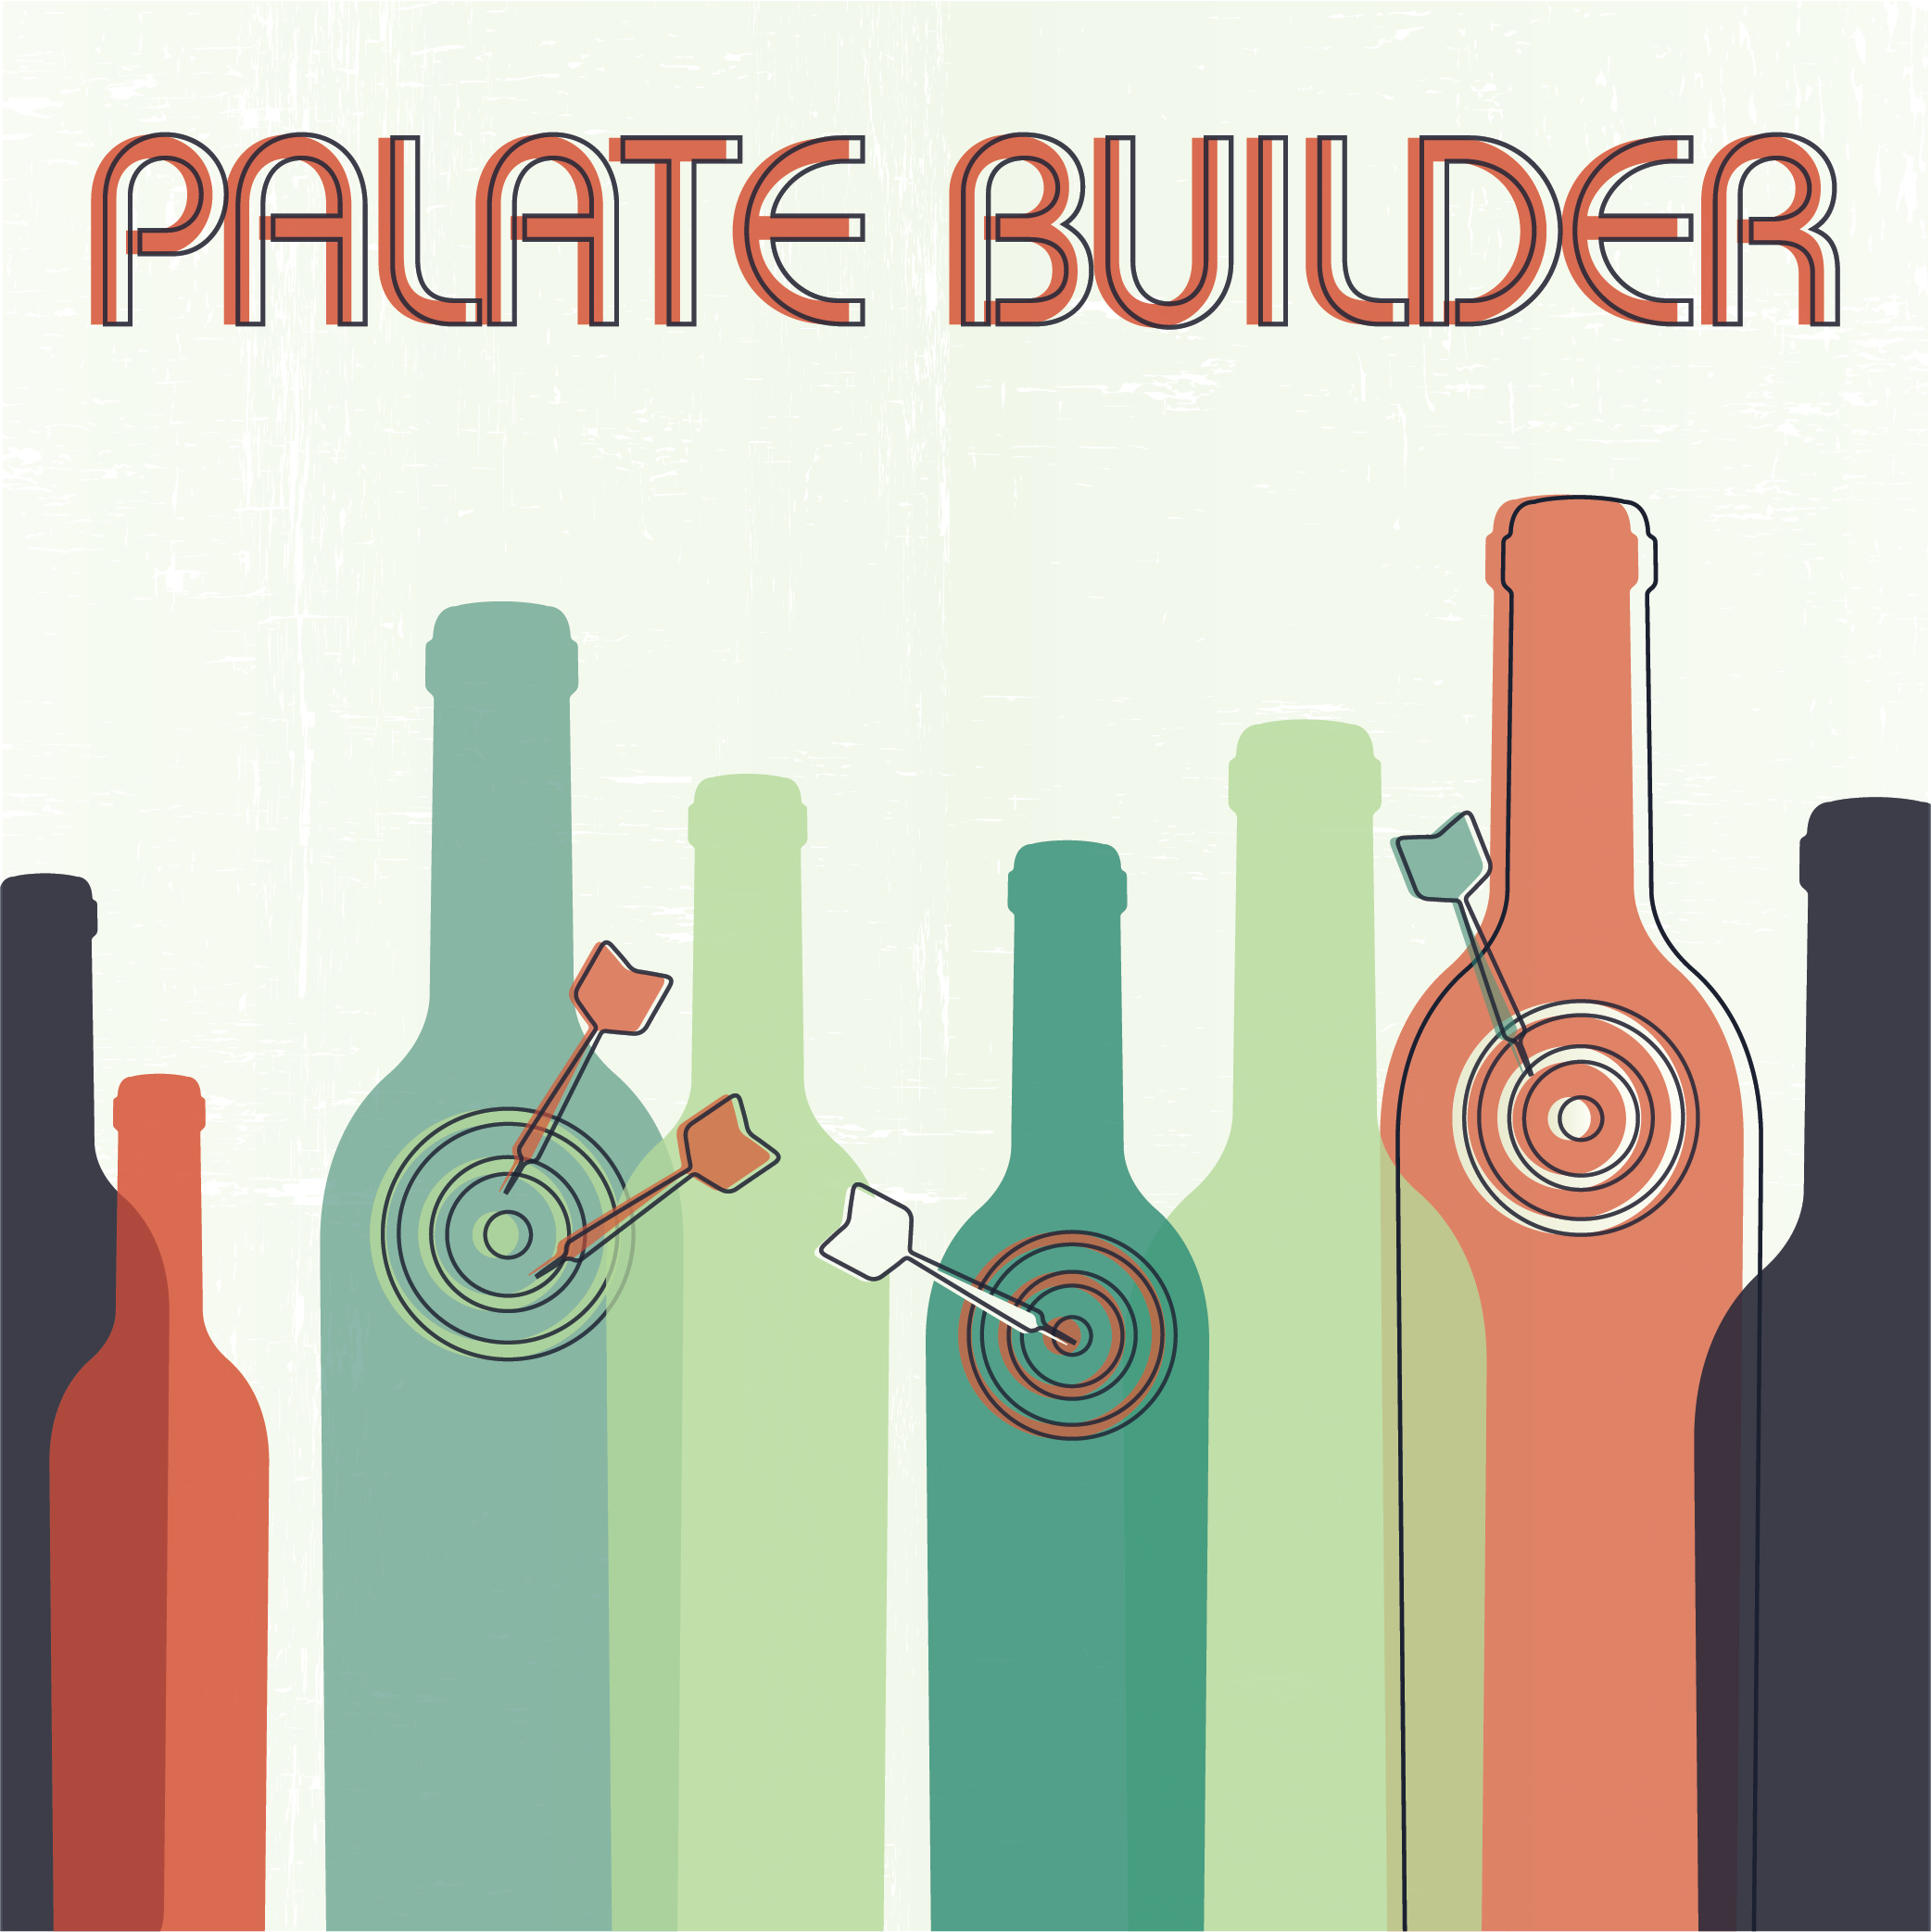 Palate Builder  Downtown Los Angeles  July 21, 2019 3:30 PM - 5:30 PM